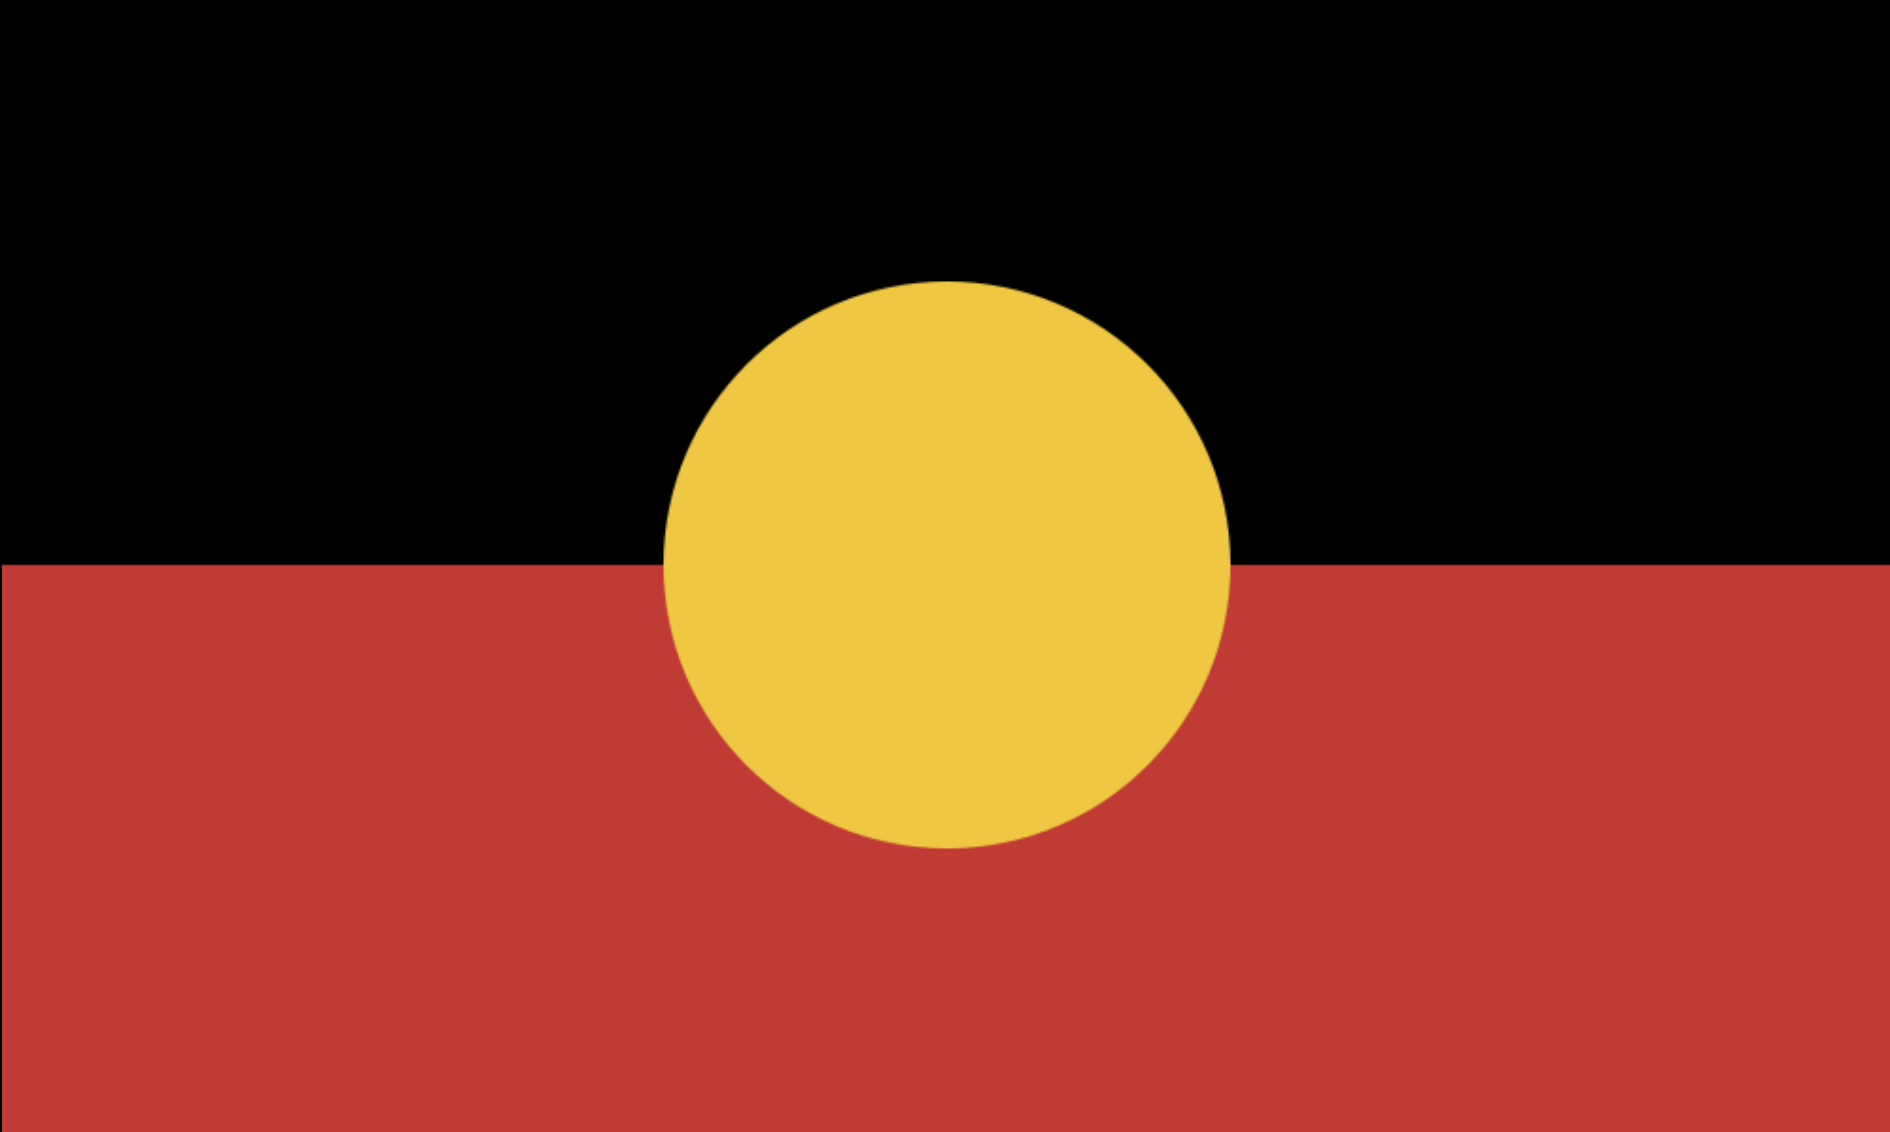 The flag was designed in 1971 by Aboriginal artist Harold Thomas.It is now an 'Official Flag of Australia', but was originally created for the land rights movement,establishing the inherent Aboriginal right to land.